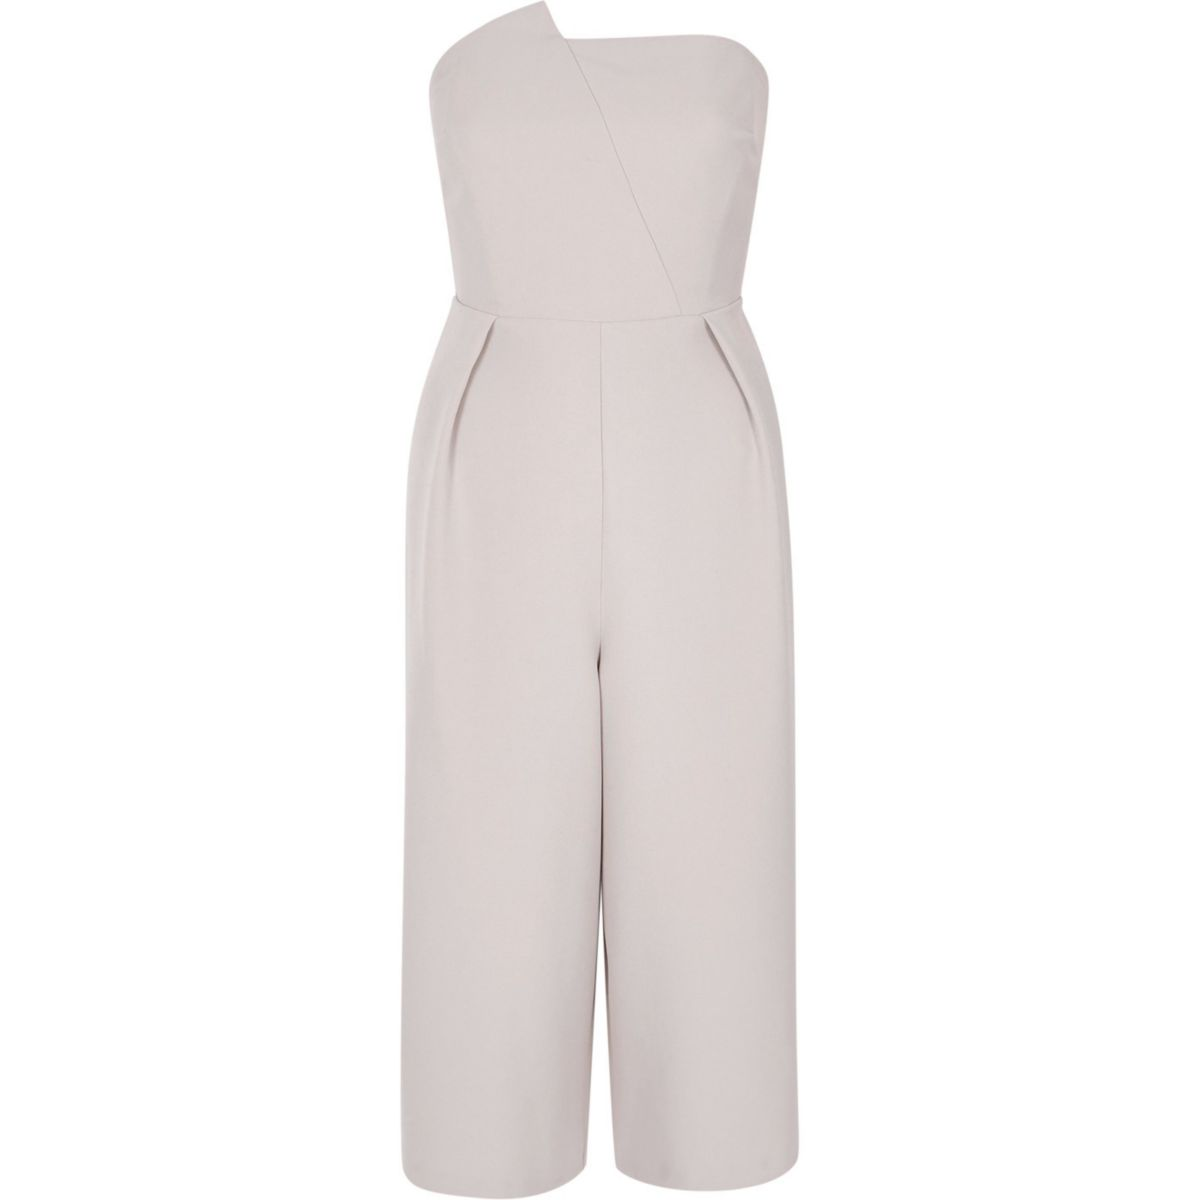 Light grey bandeau culotte jumpsuit